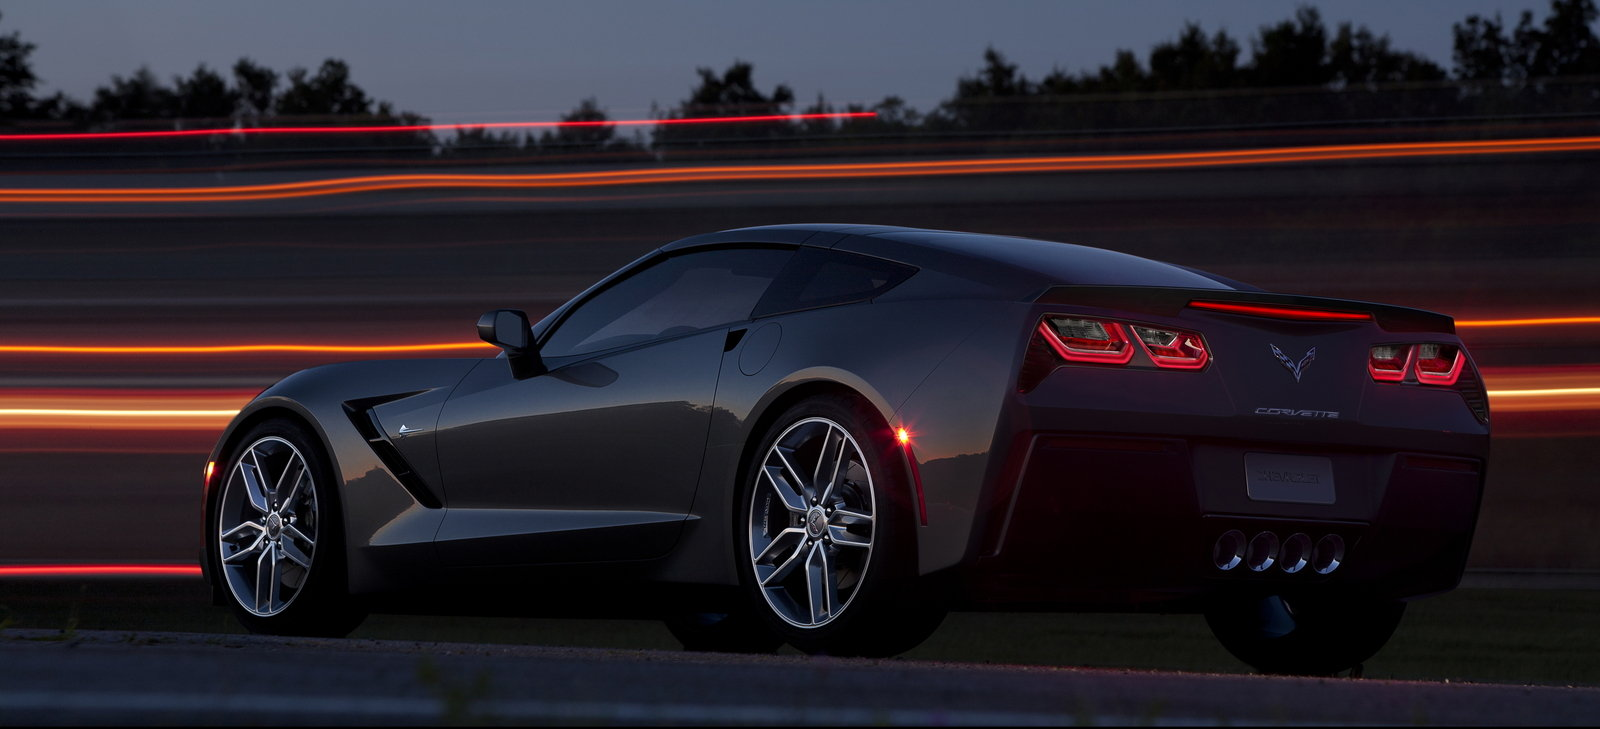 chevrolet corvette stingray picture 500365 car review top speed. Cars Review. Best American Auto & Cars Review